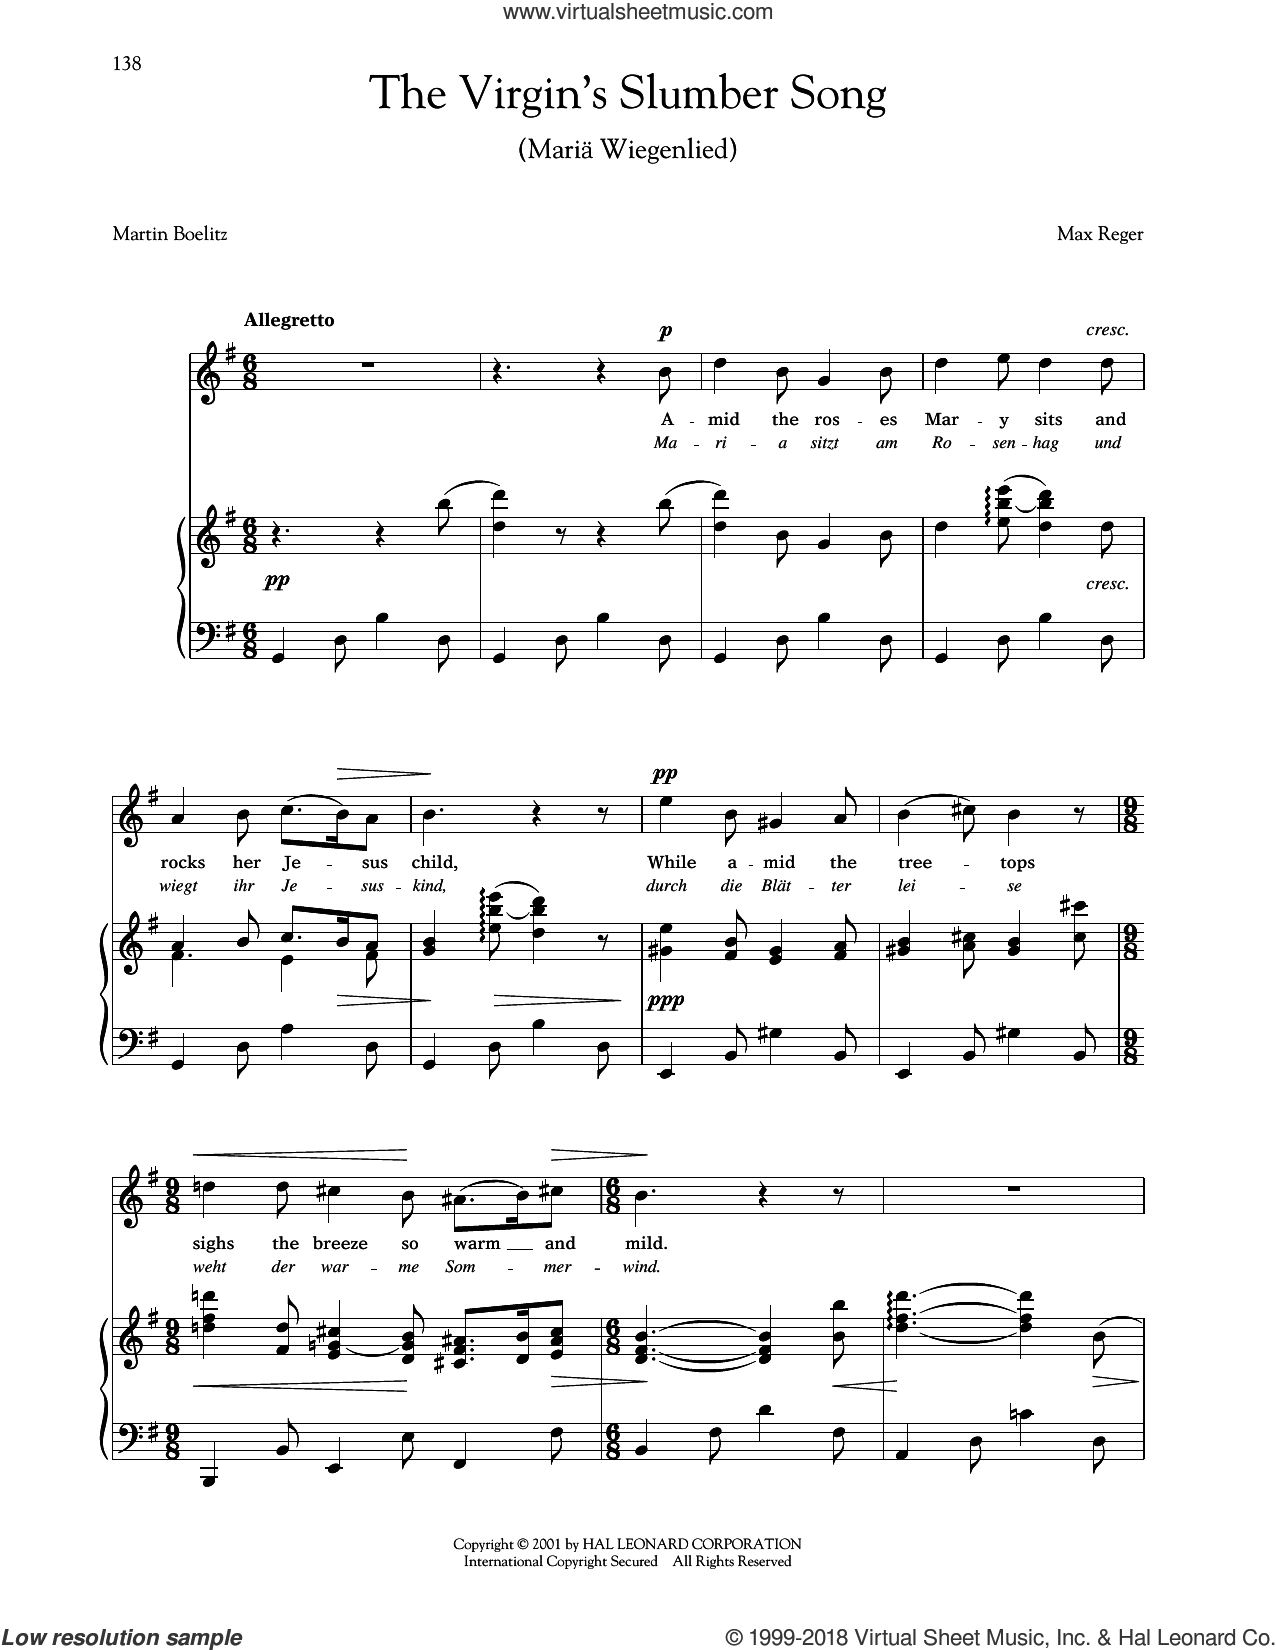 Maria Wiegenlied (The Virgin's Slumber Song) (Reger) sheet music for voice and piano (High Voice) by Max Reger and Joan Frey Boytim, intermediate skill level